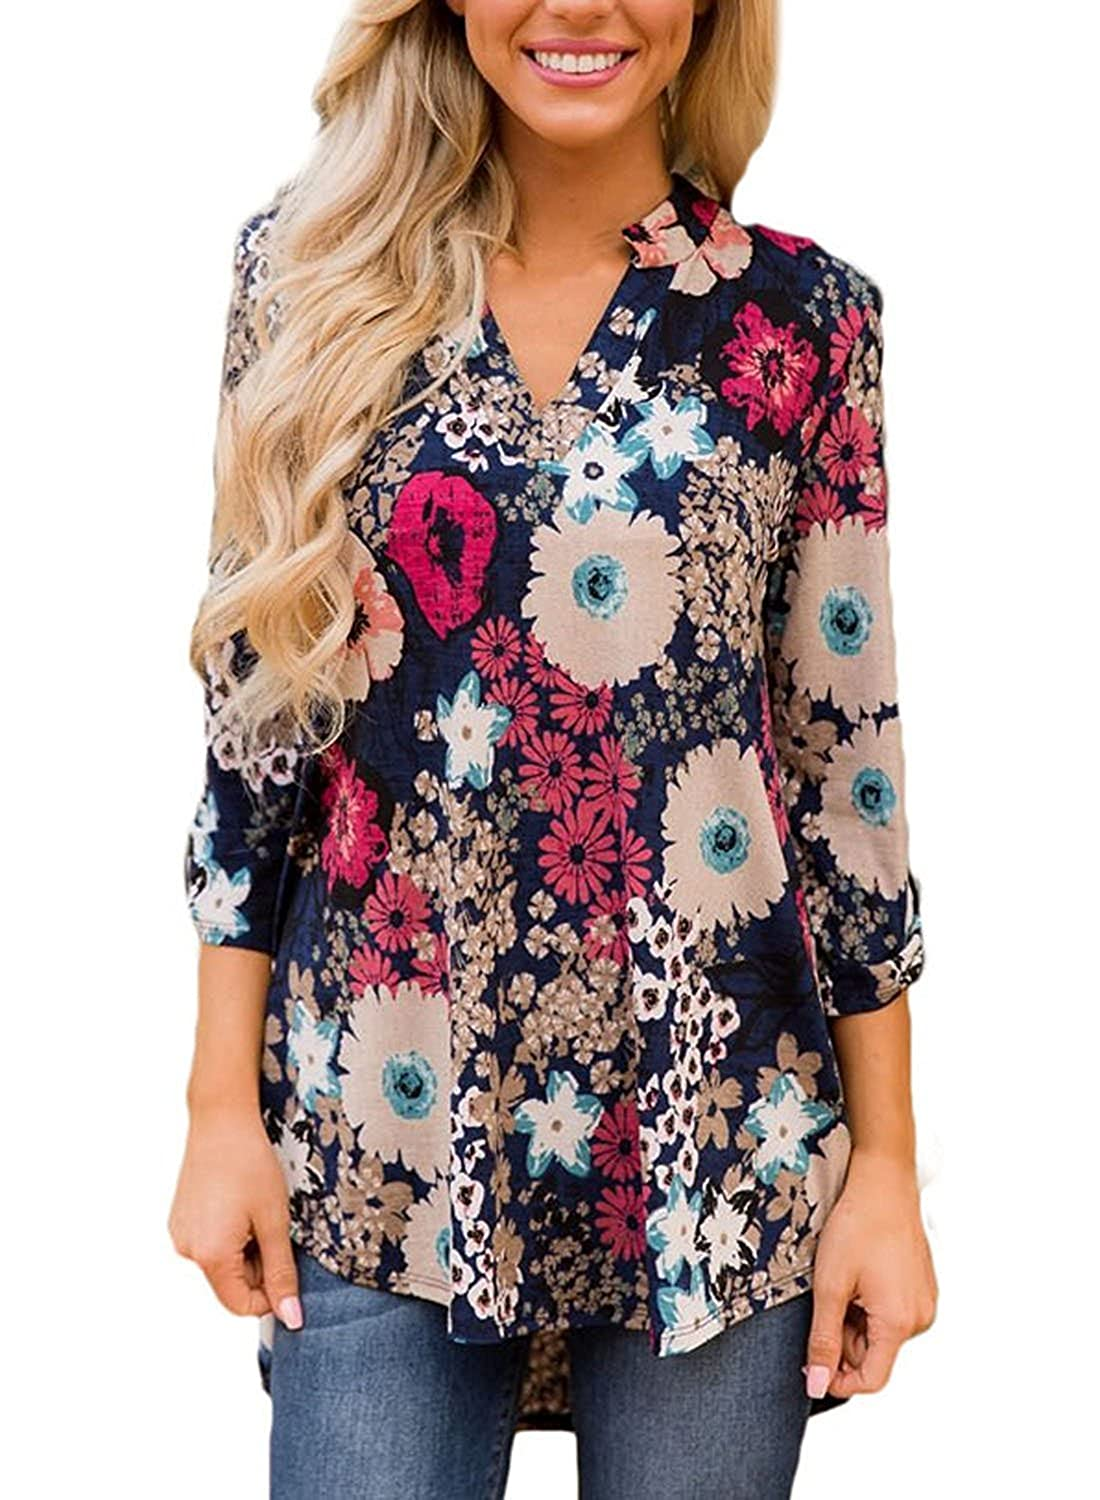 6e7b33b7358 TrendiMax Women Casual Split V Neck Loose Cuffed 3 4 Sleeve Floral Print  Tunic Top Blouses (9 Floral Pattern) at Amazon Women's Clothing store: